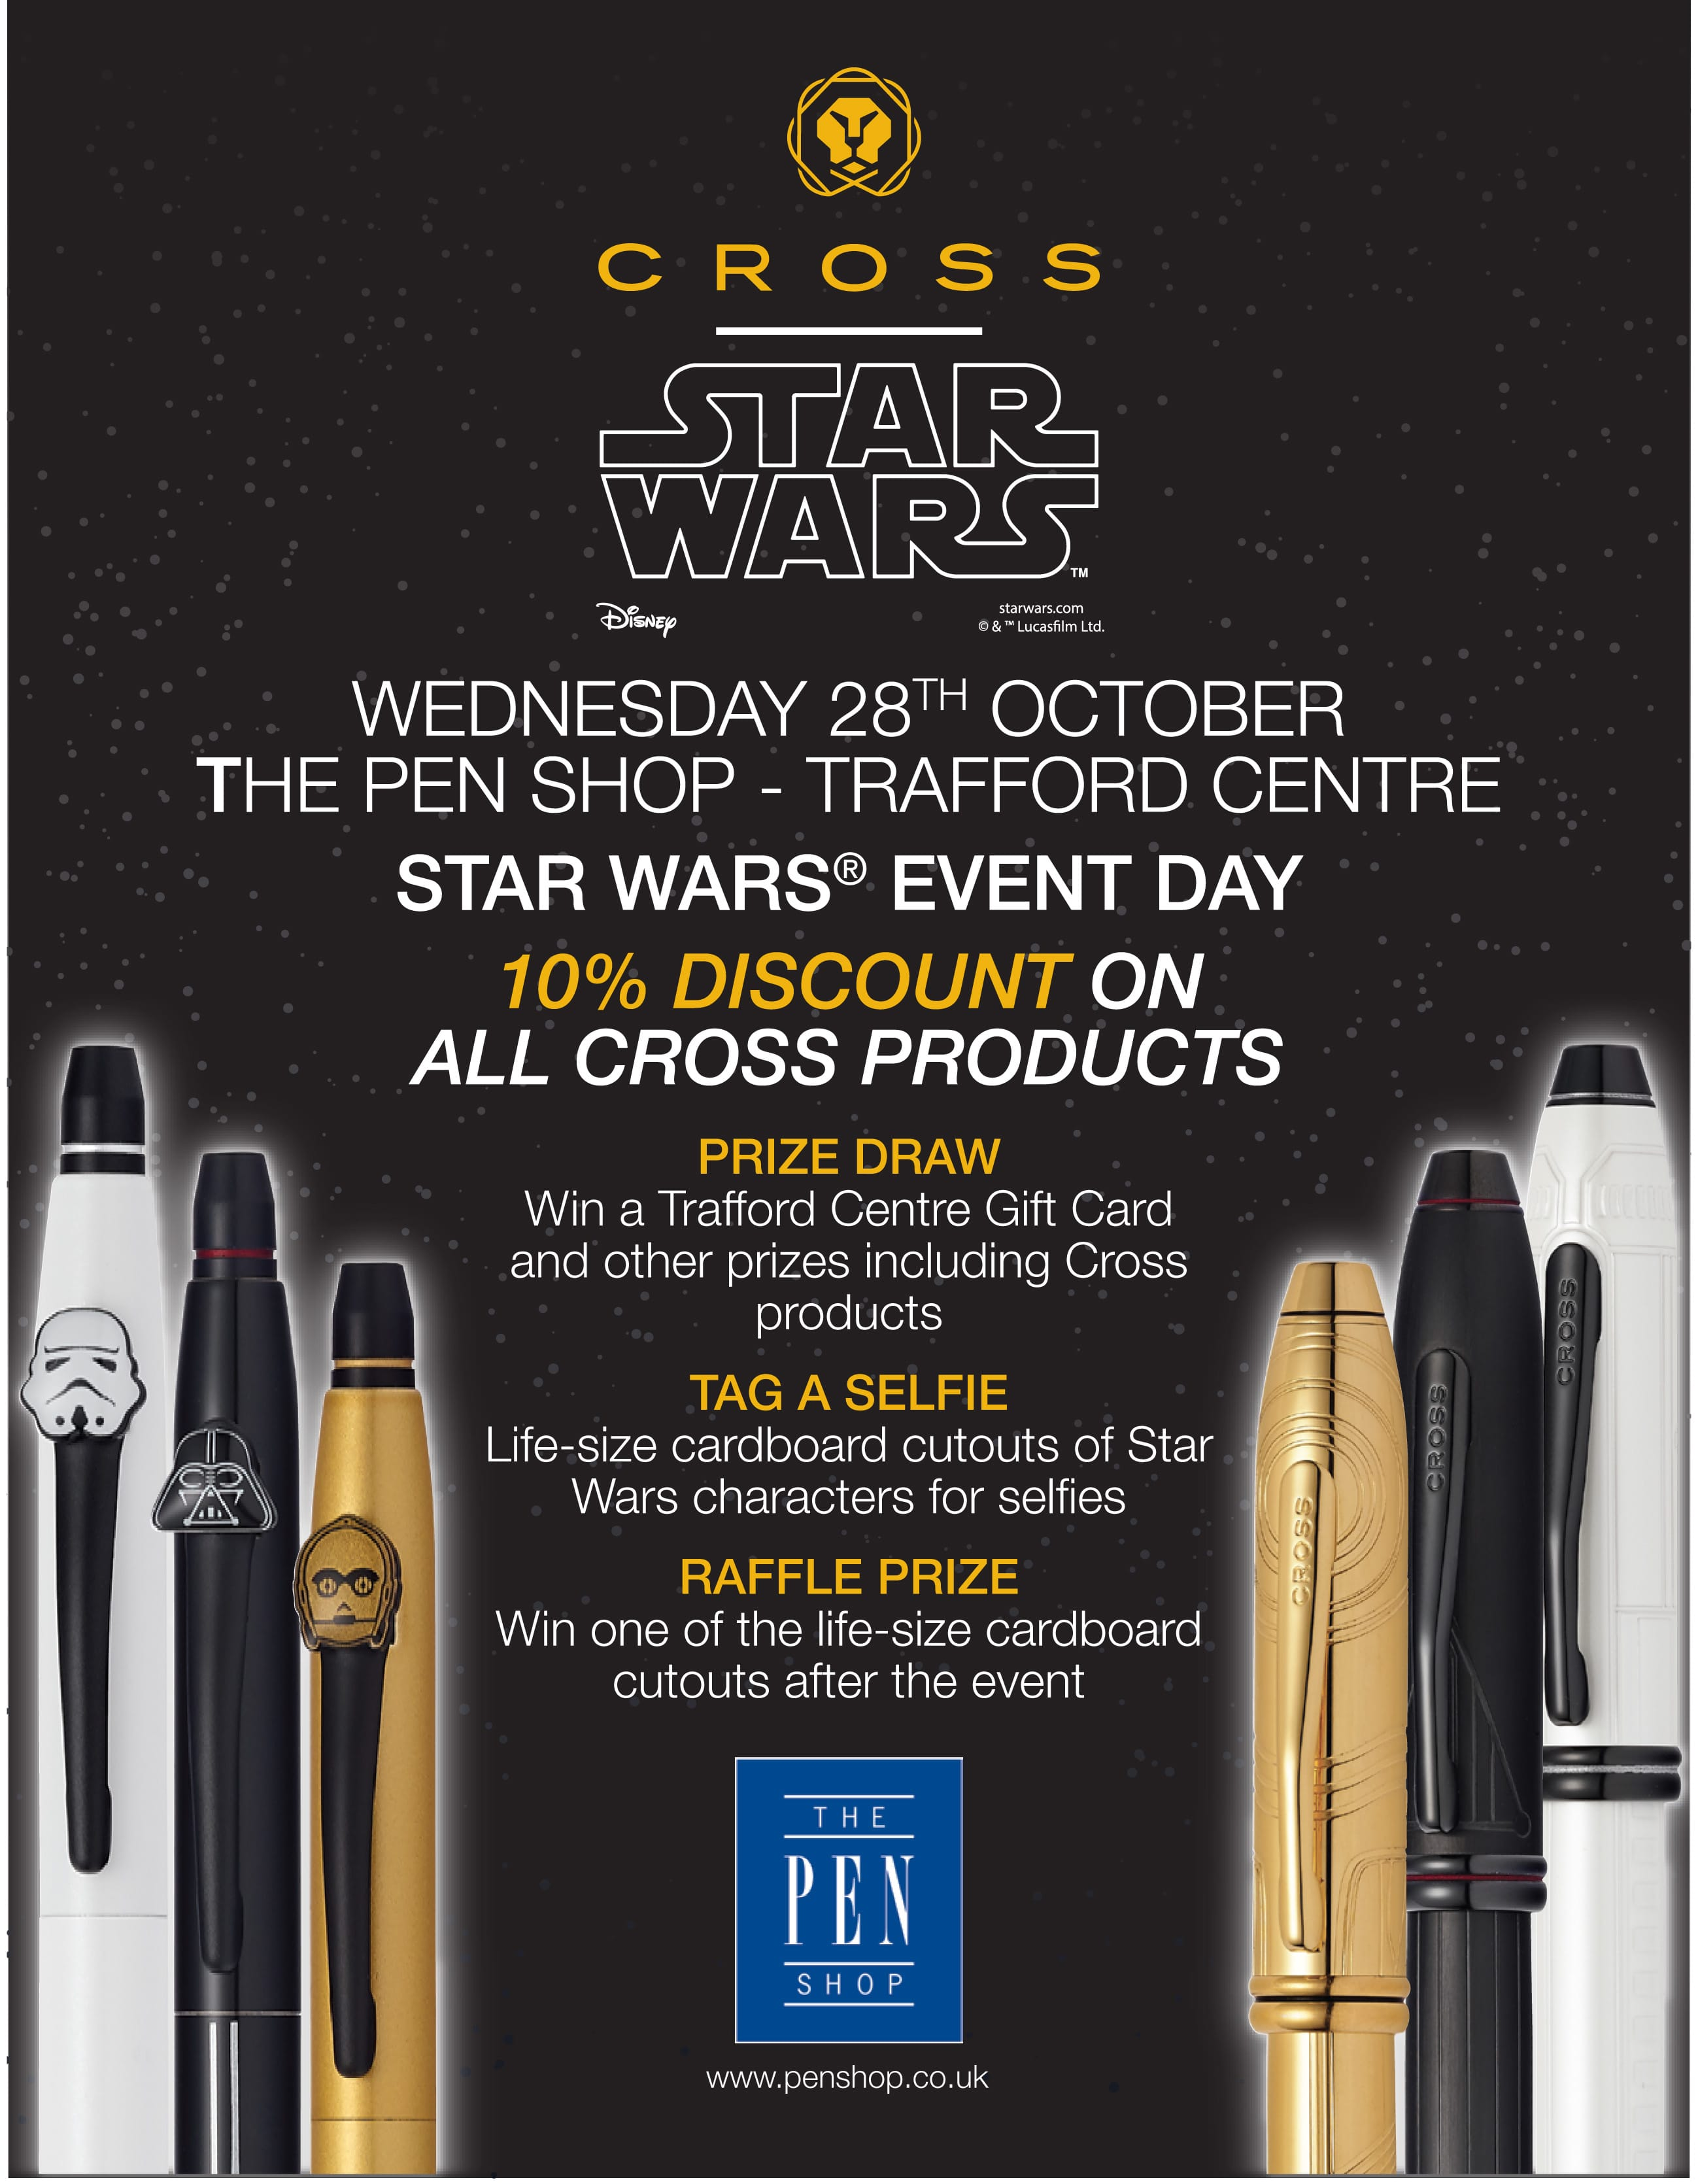 On Wednesday 28th October The Pen Shop Trafford Centre will host a special Star Wars event day with special offers and prizes.